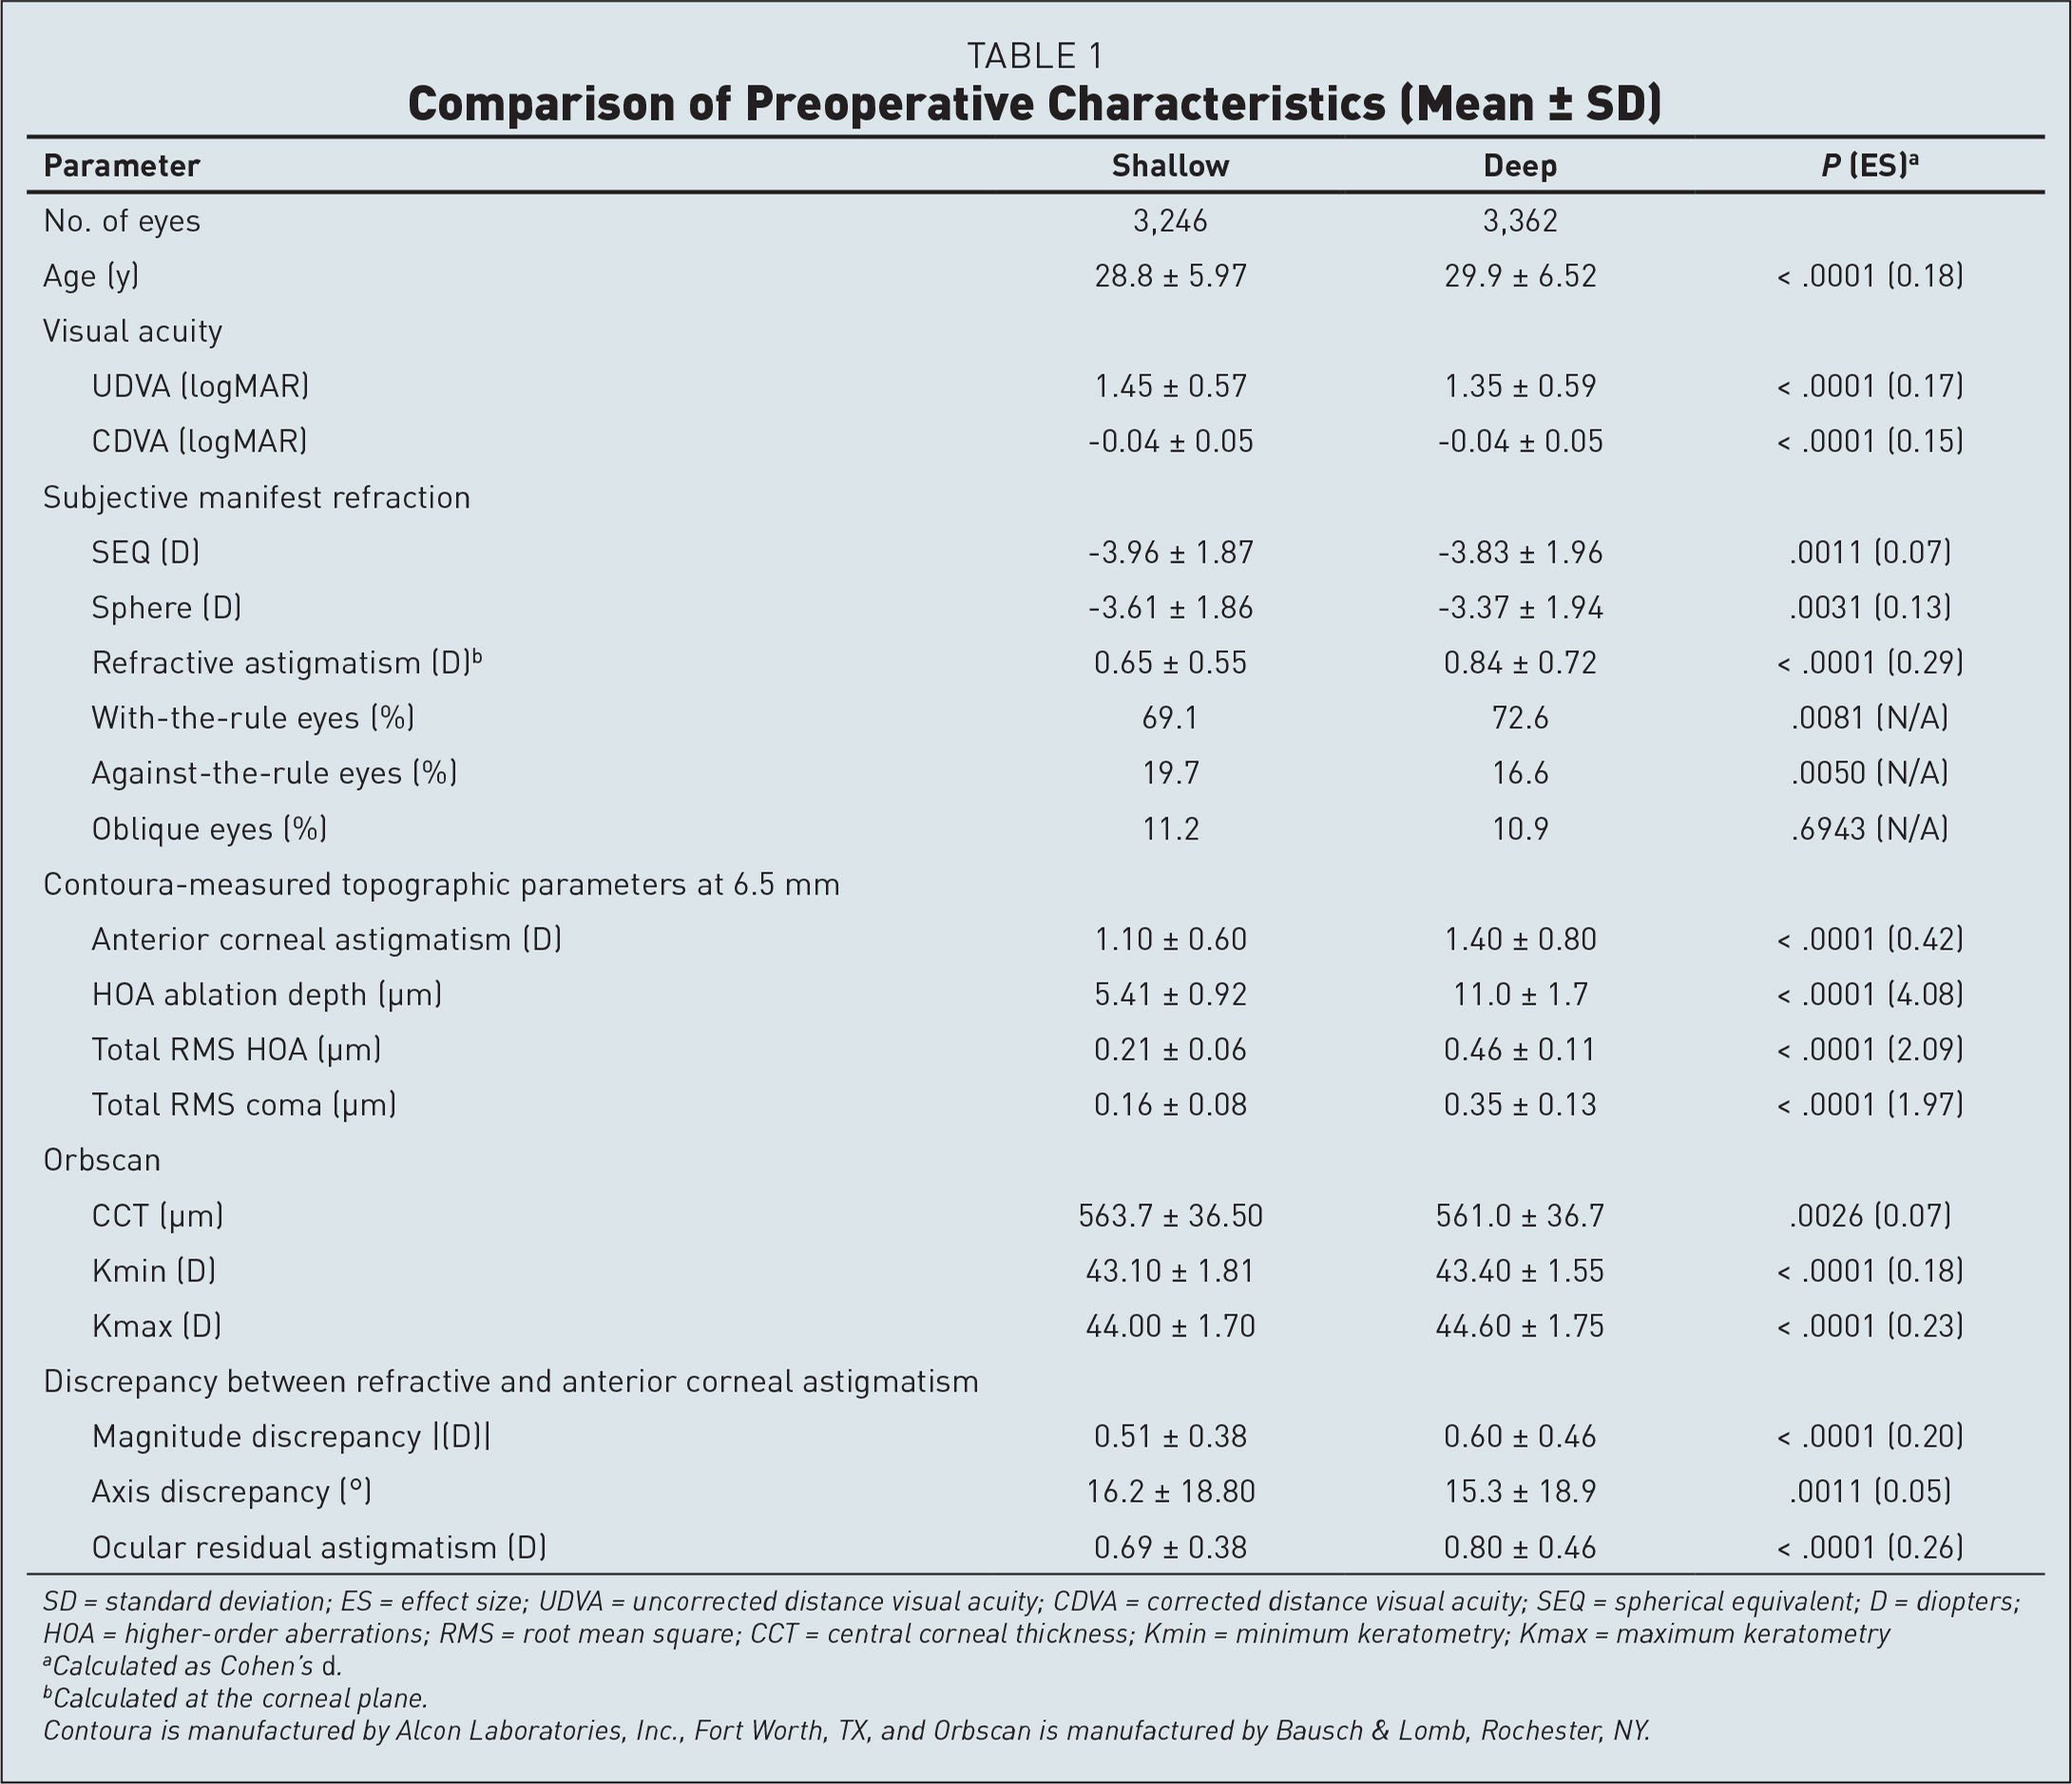 Comparison of Preoperative Characteristics (Mean ± SD)